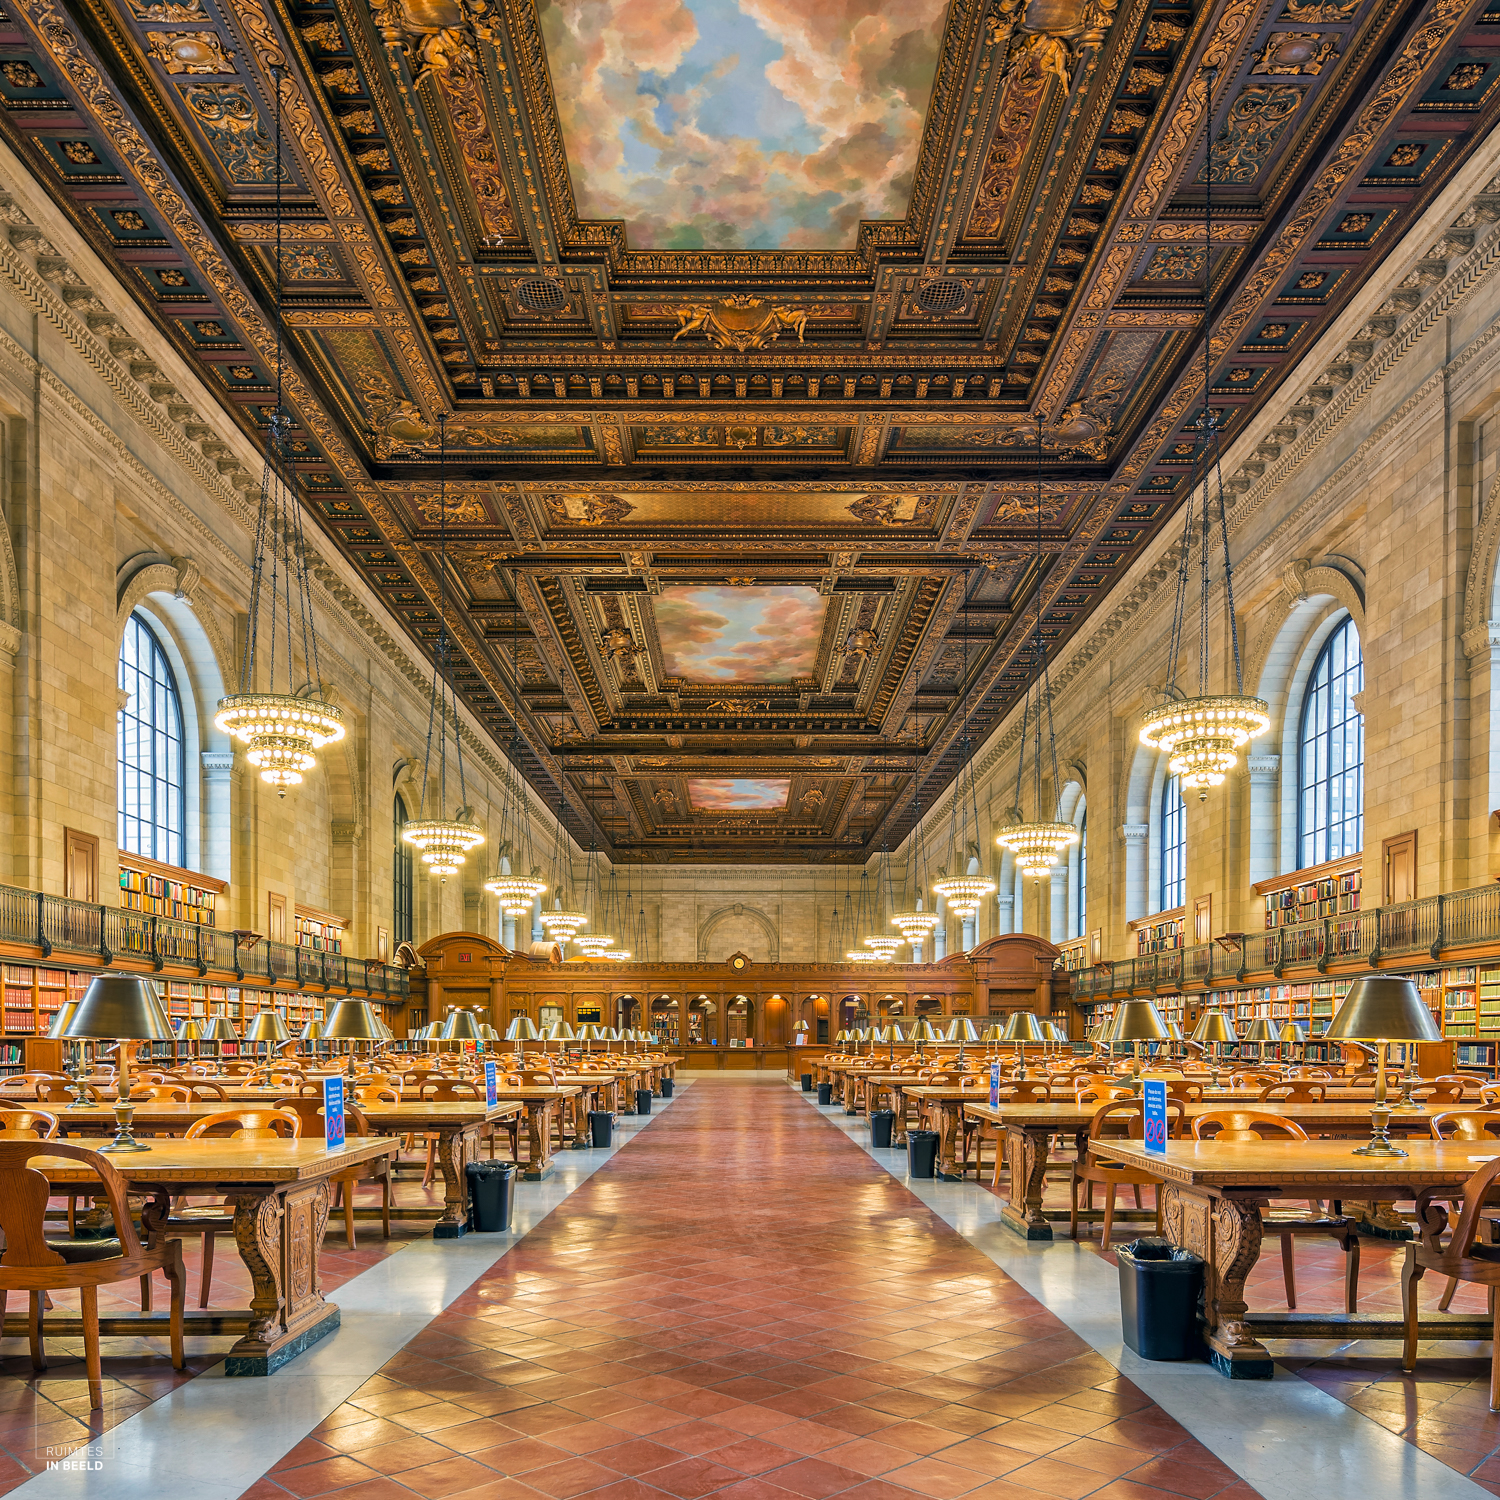 De Rose Reading Room in de New York Public Library | Rose Reading Room in the New York Public Library